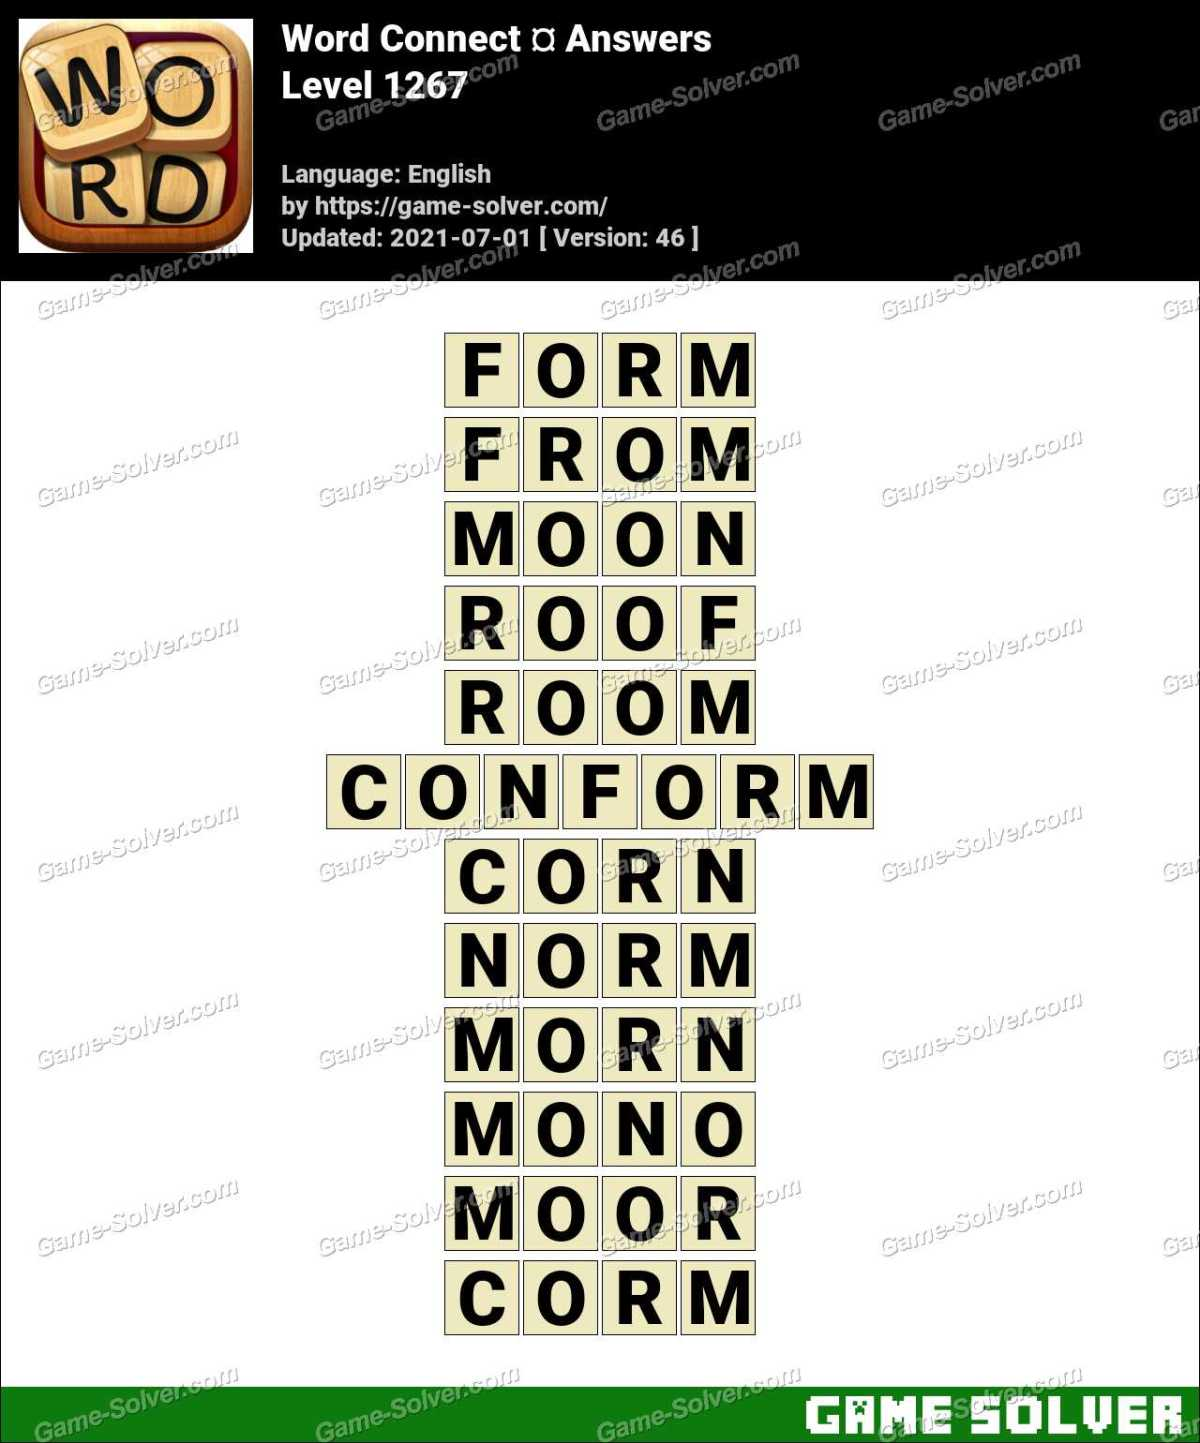 Word Connect Level 1267 Answers